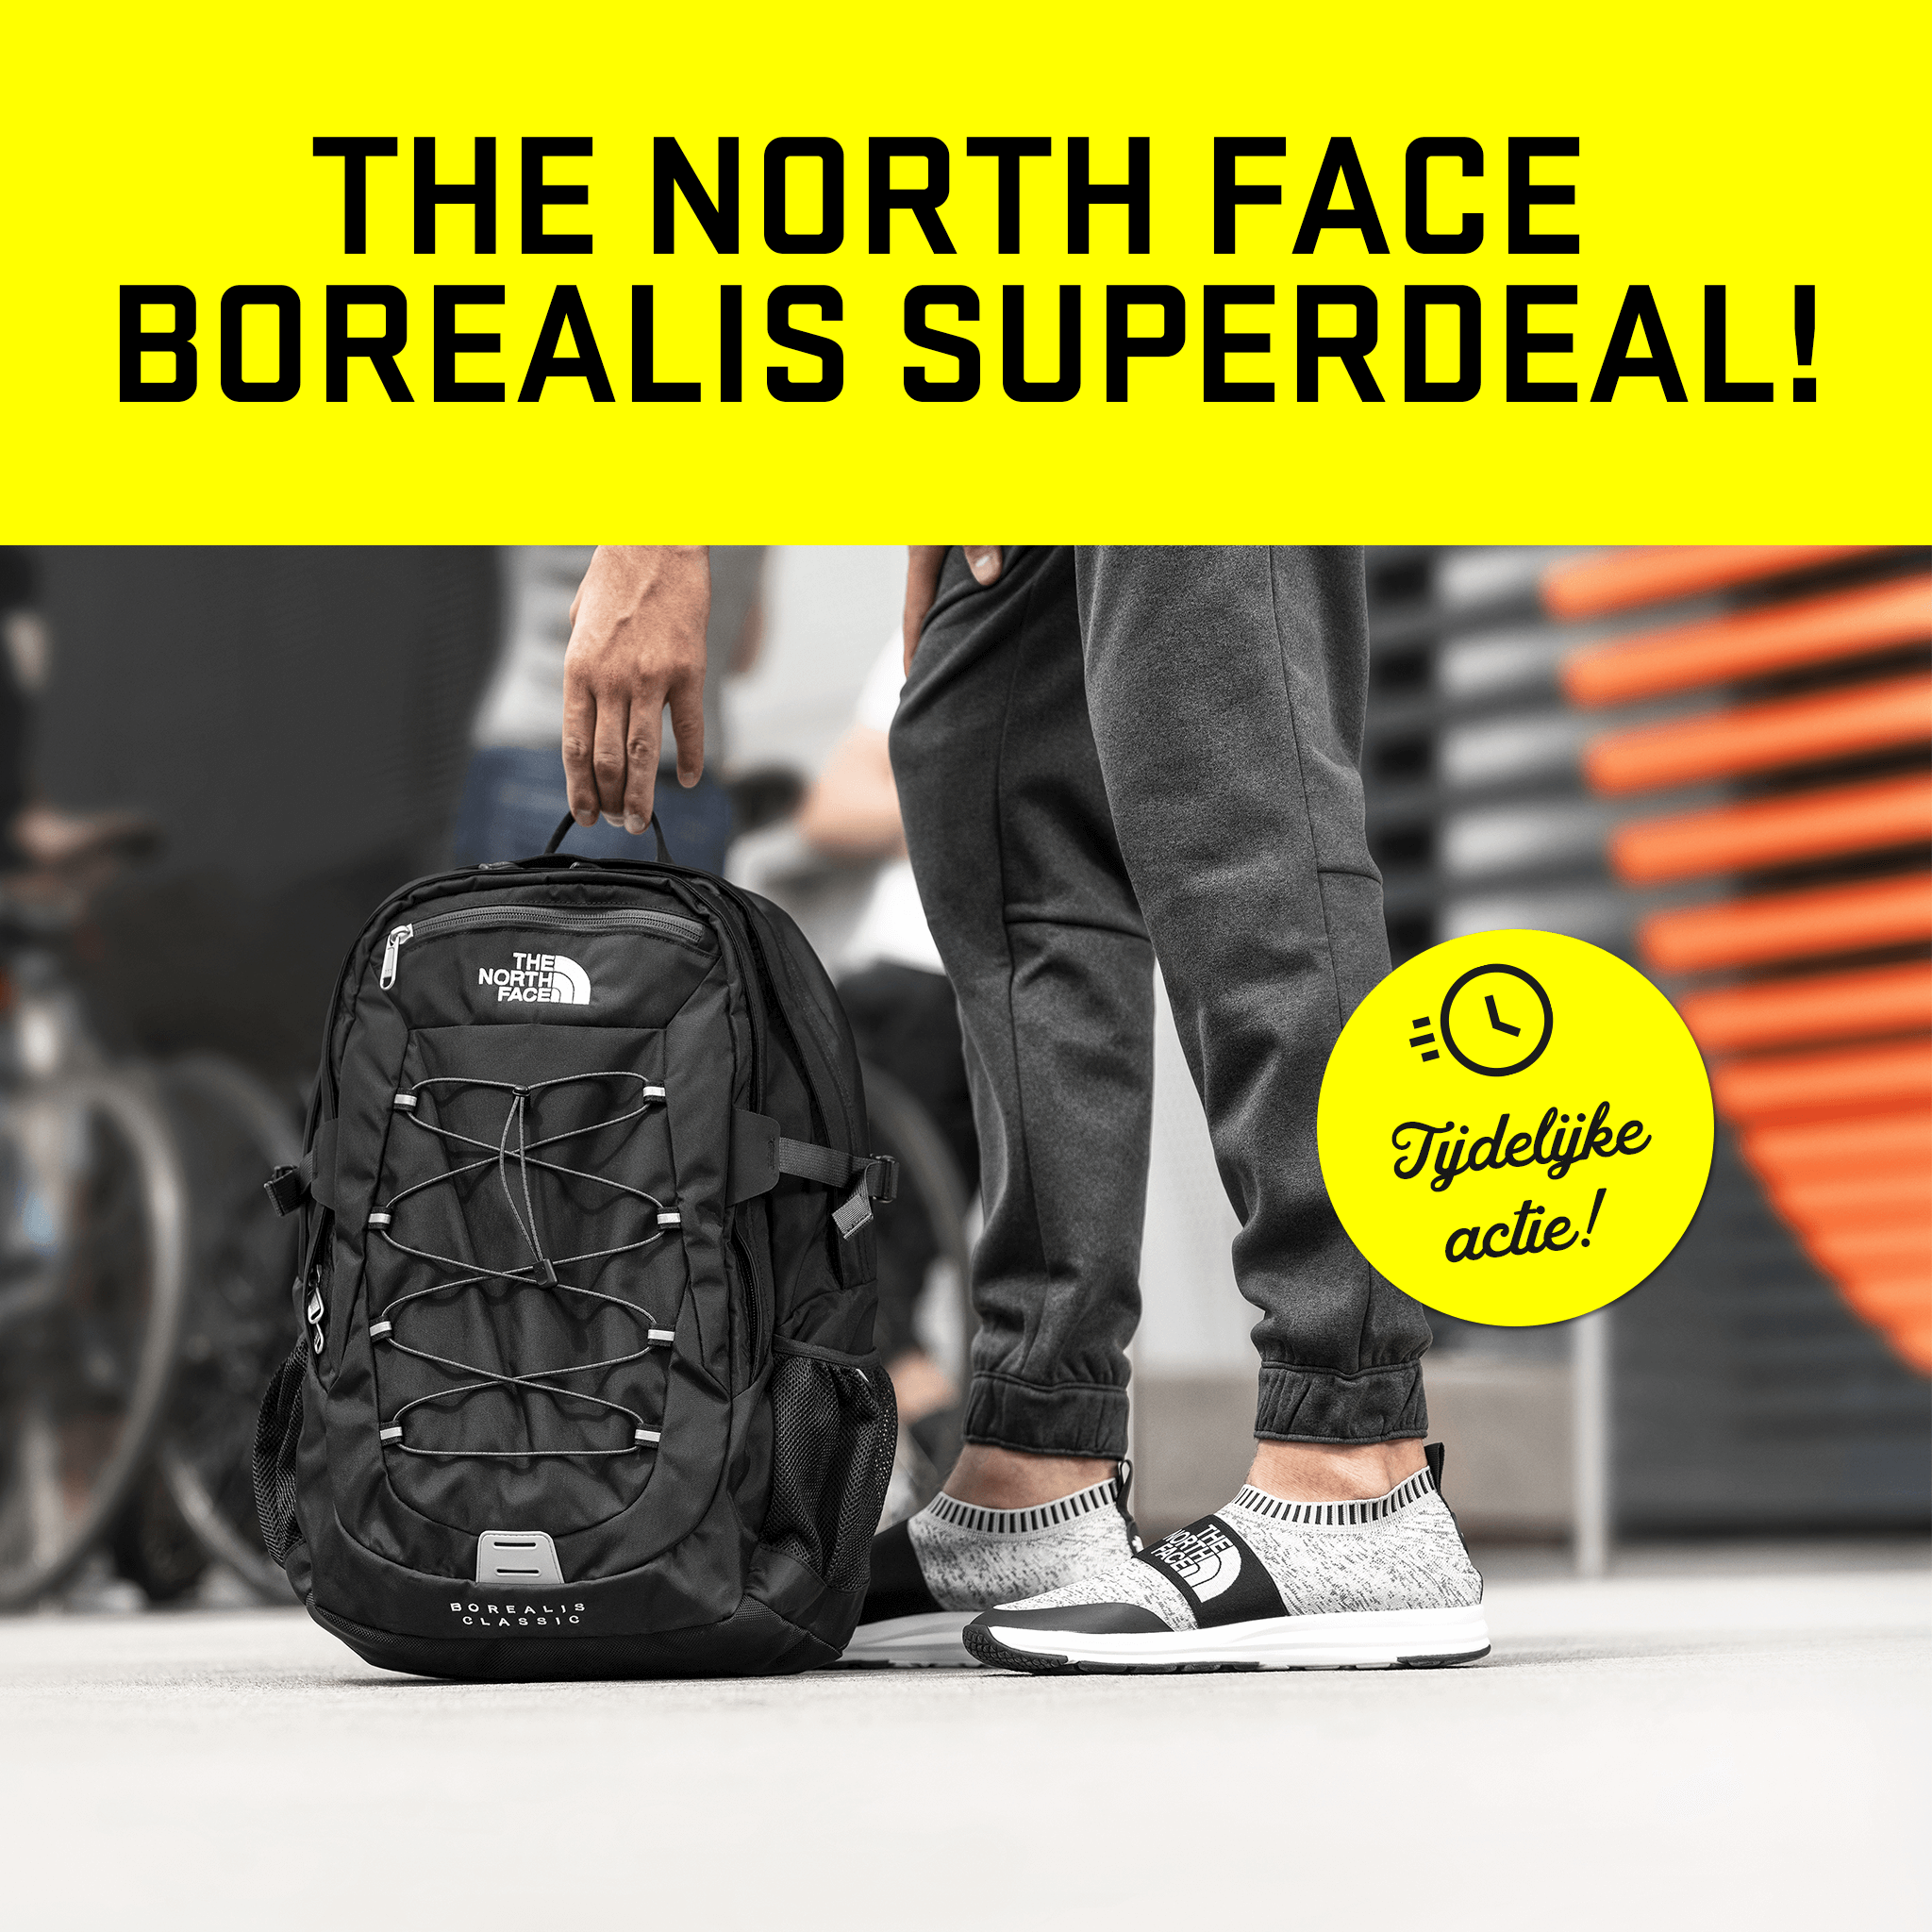 The North Face Borealis Superdeal